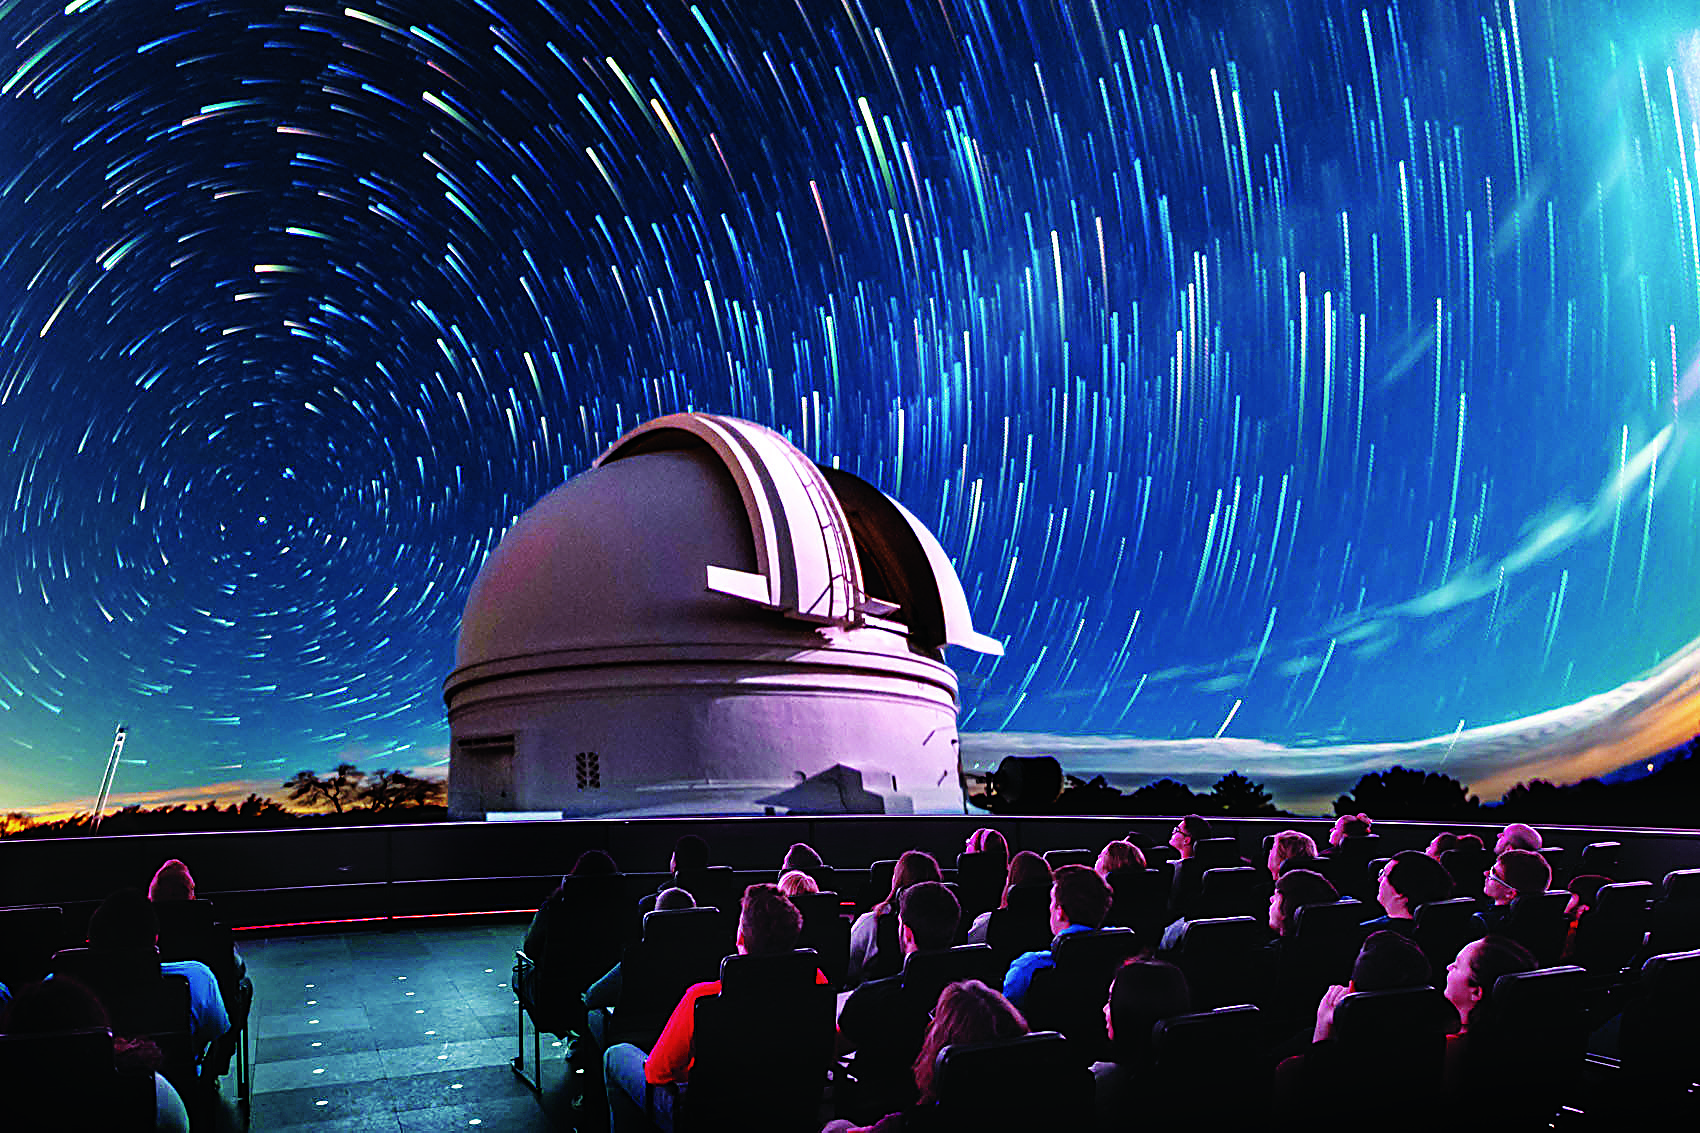 ct-adler-planetarium-domed-theater-image-quality20170224